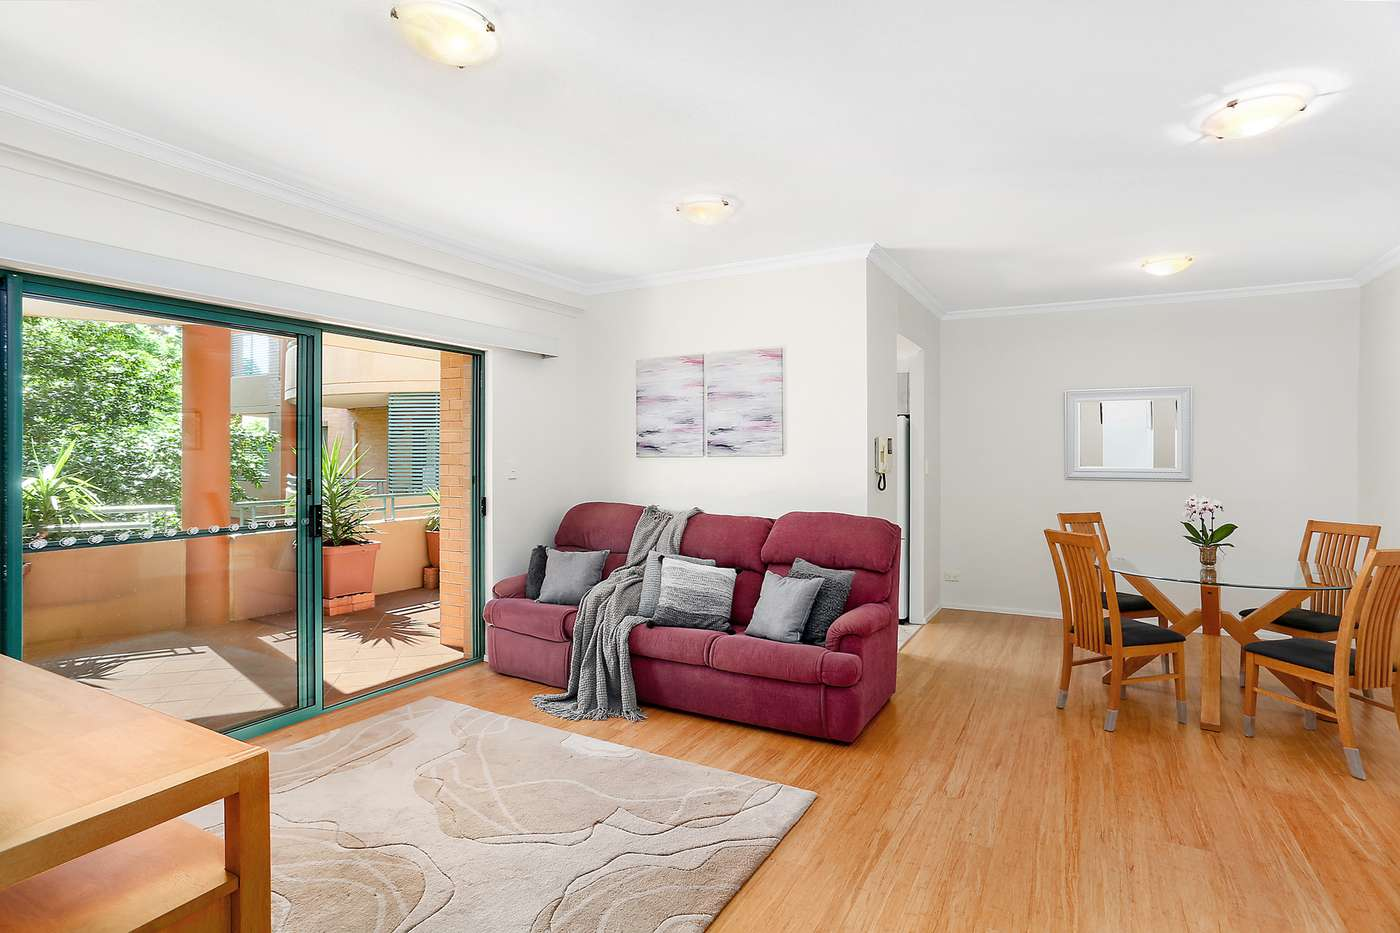 Main view of Homely apartment listing, 23/18 Centennial Avenue, Chatswood, NSW 2067